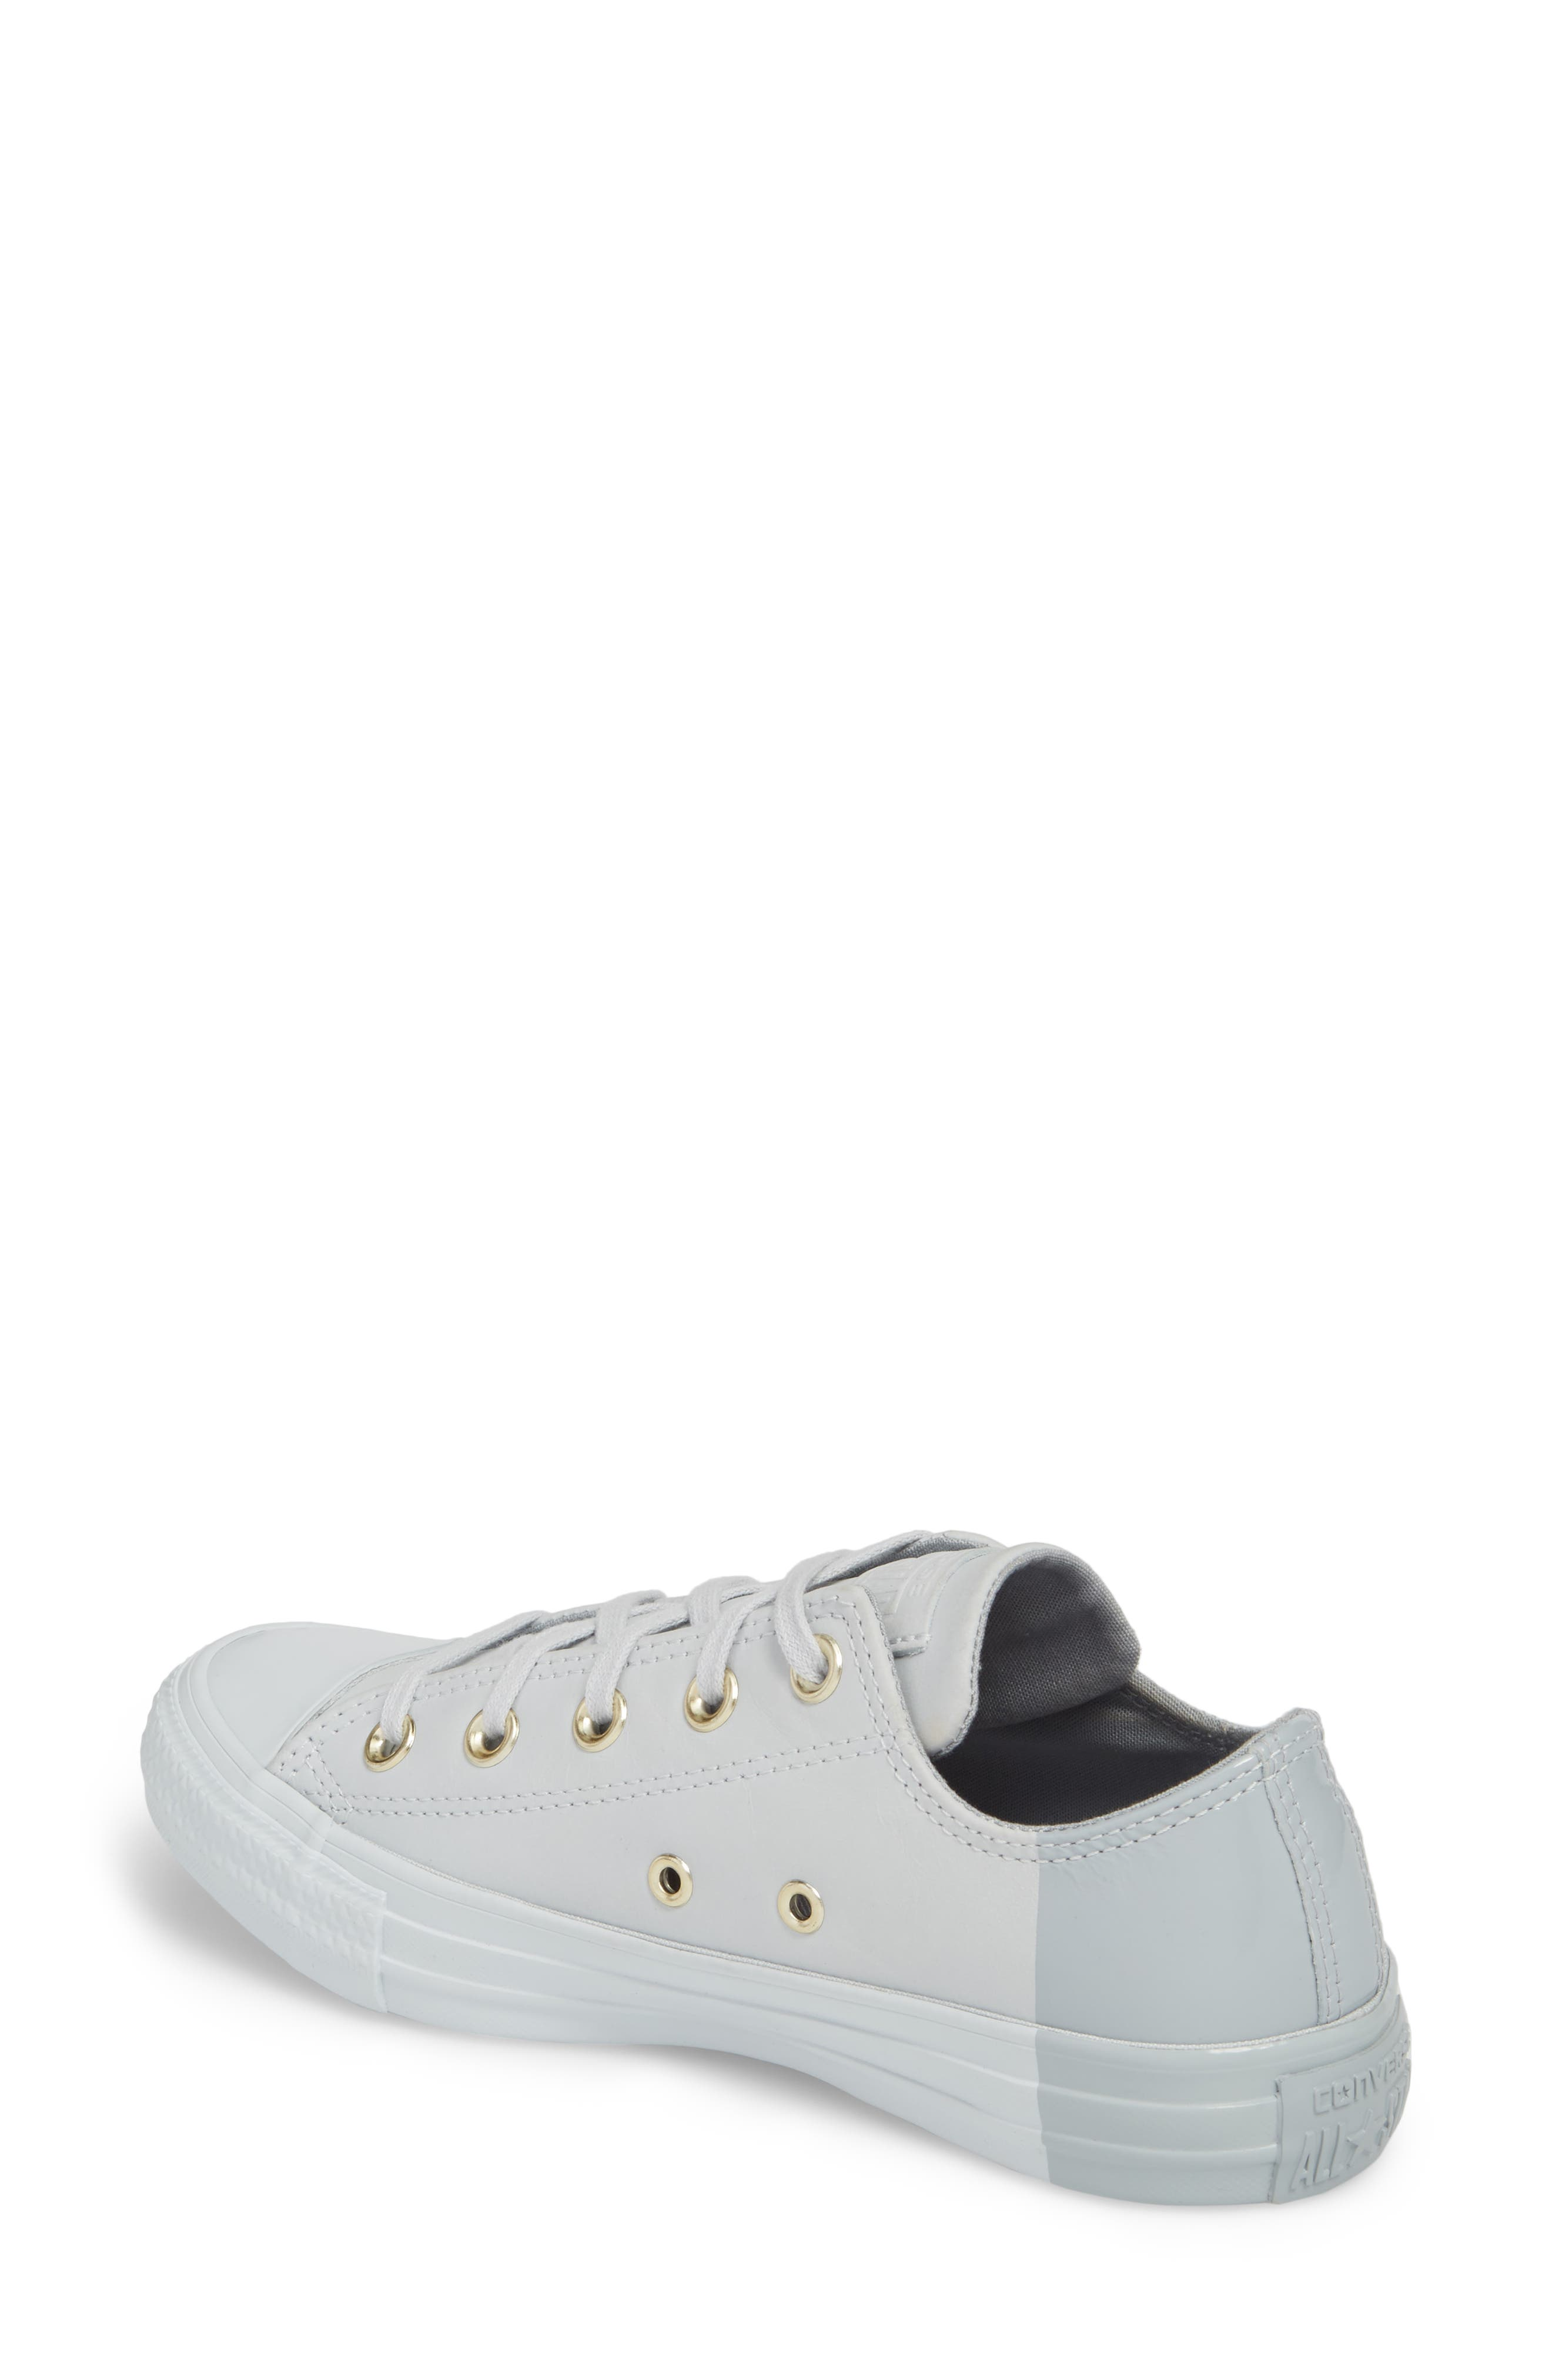 Chuck Taylor<sup>®</sup> All Star<sup>®</sup> Colorblock Ox Sneaker,                             Alternate thumbnail 2, color,                             082